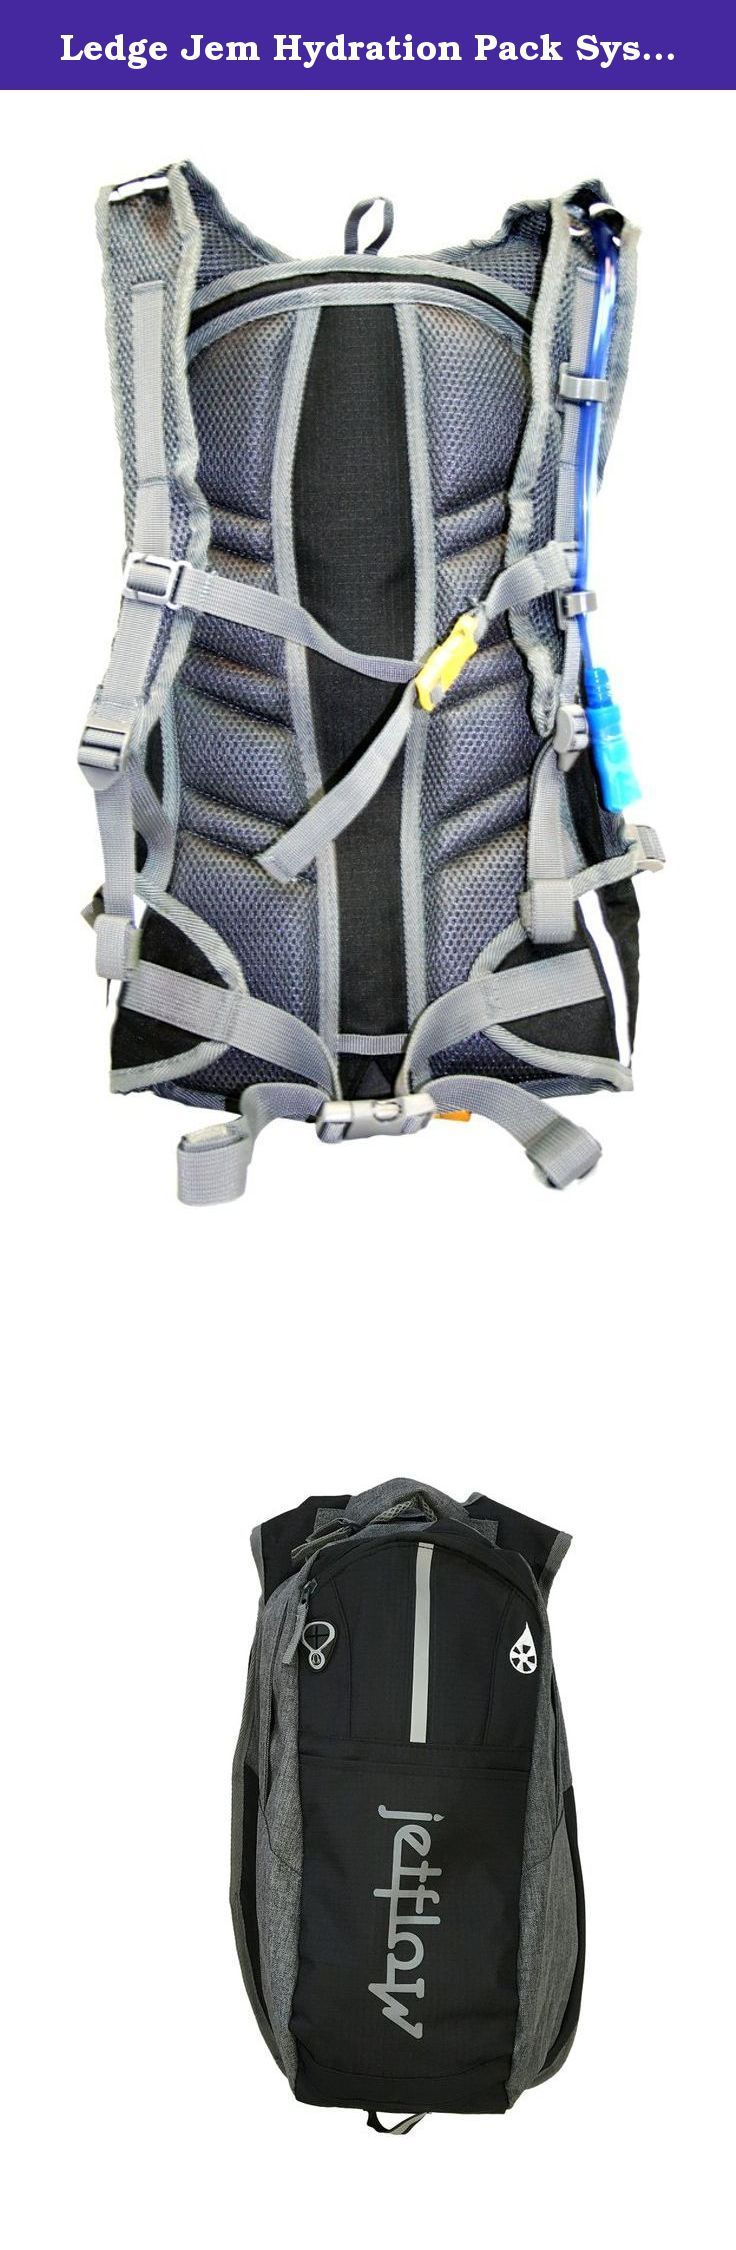 Ledge Jem Hydration Pack System (Black). 2 Liter Hydration Pack System Bladder Volume: 68 oz (2 liter) Storage Volume: 570 cubic inches Dobby Diamond Ripstop Construction Features: full rain shield with velcro fastener * 7 organizational pockets * drip free dual action bite valve * adjustable waist and sternum strap * 2 supplemental bottle compartments * neoprene phone/mp3 holder * interior key clip * earphone access * reflective taping * bungee cargo holder * padded ventilated back panel…